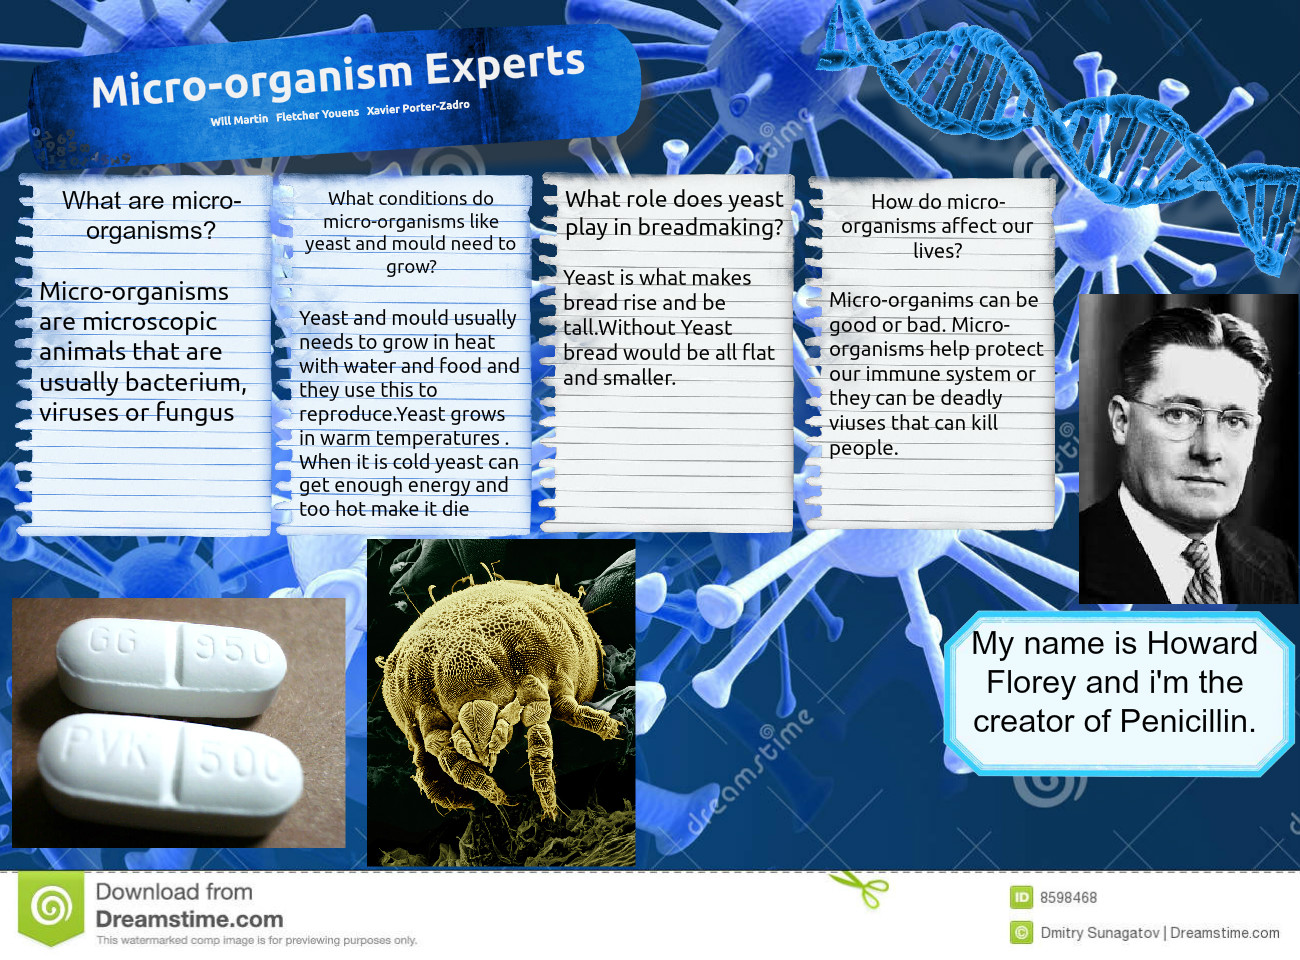 [2015] Will Martin: Micro-organism Experts